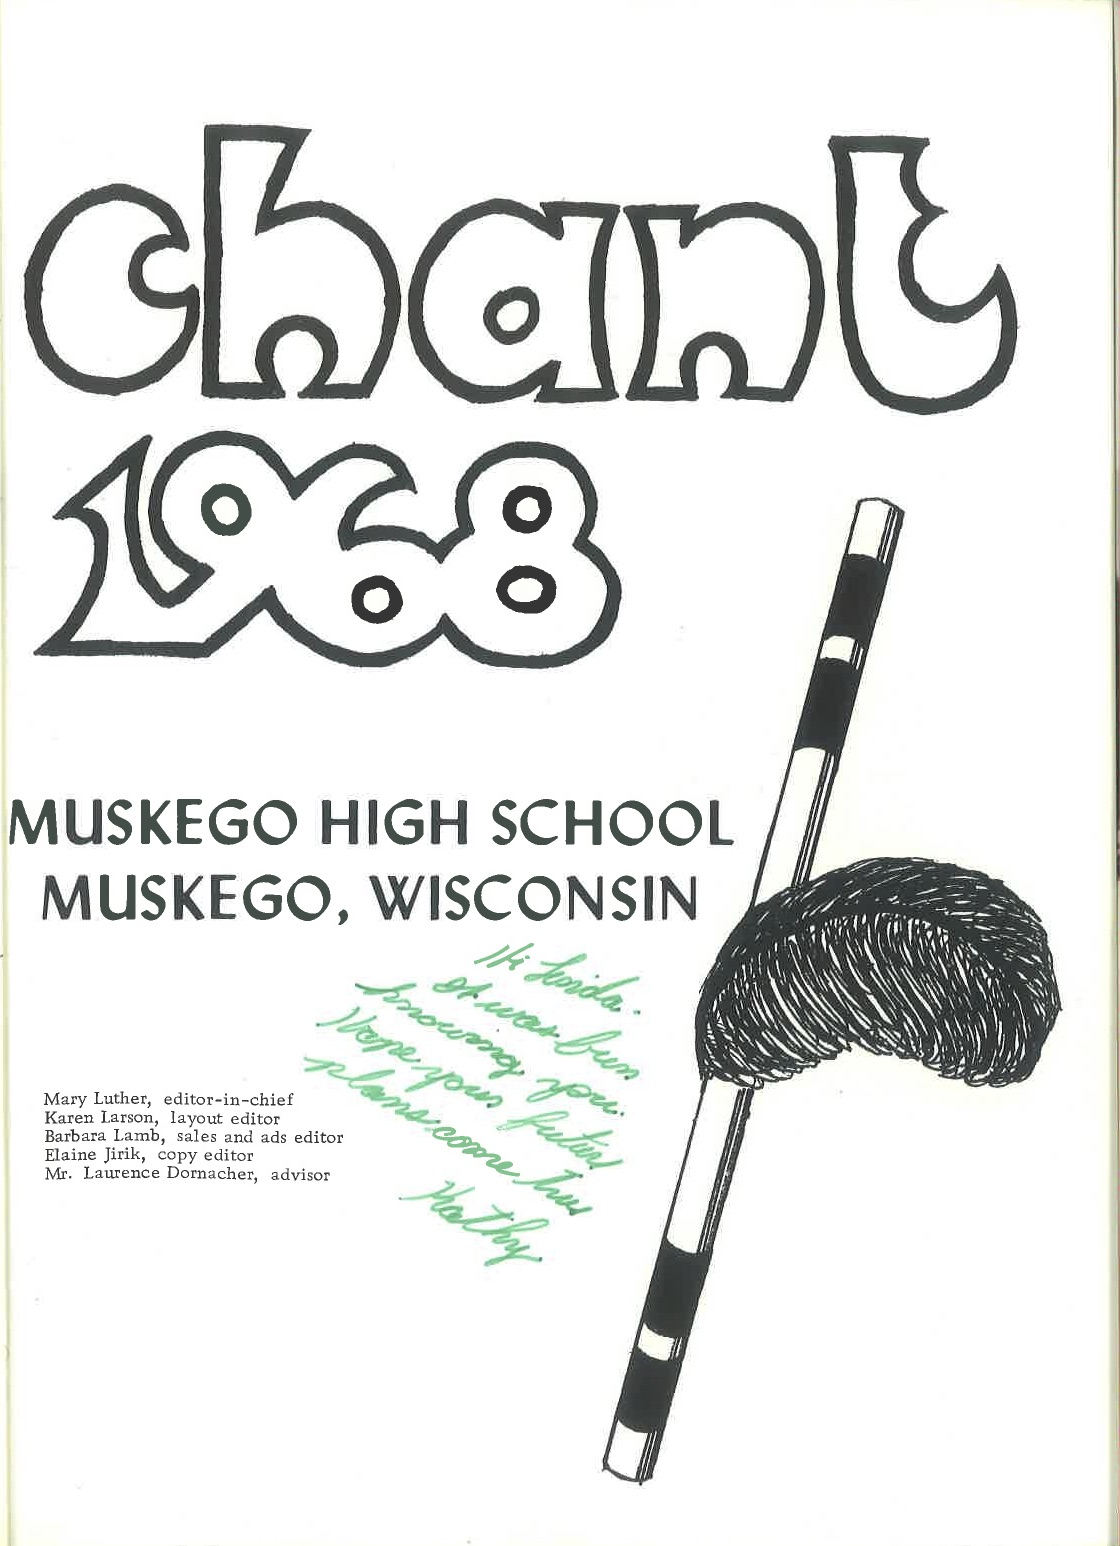 1968_Yearbook_1.jpg